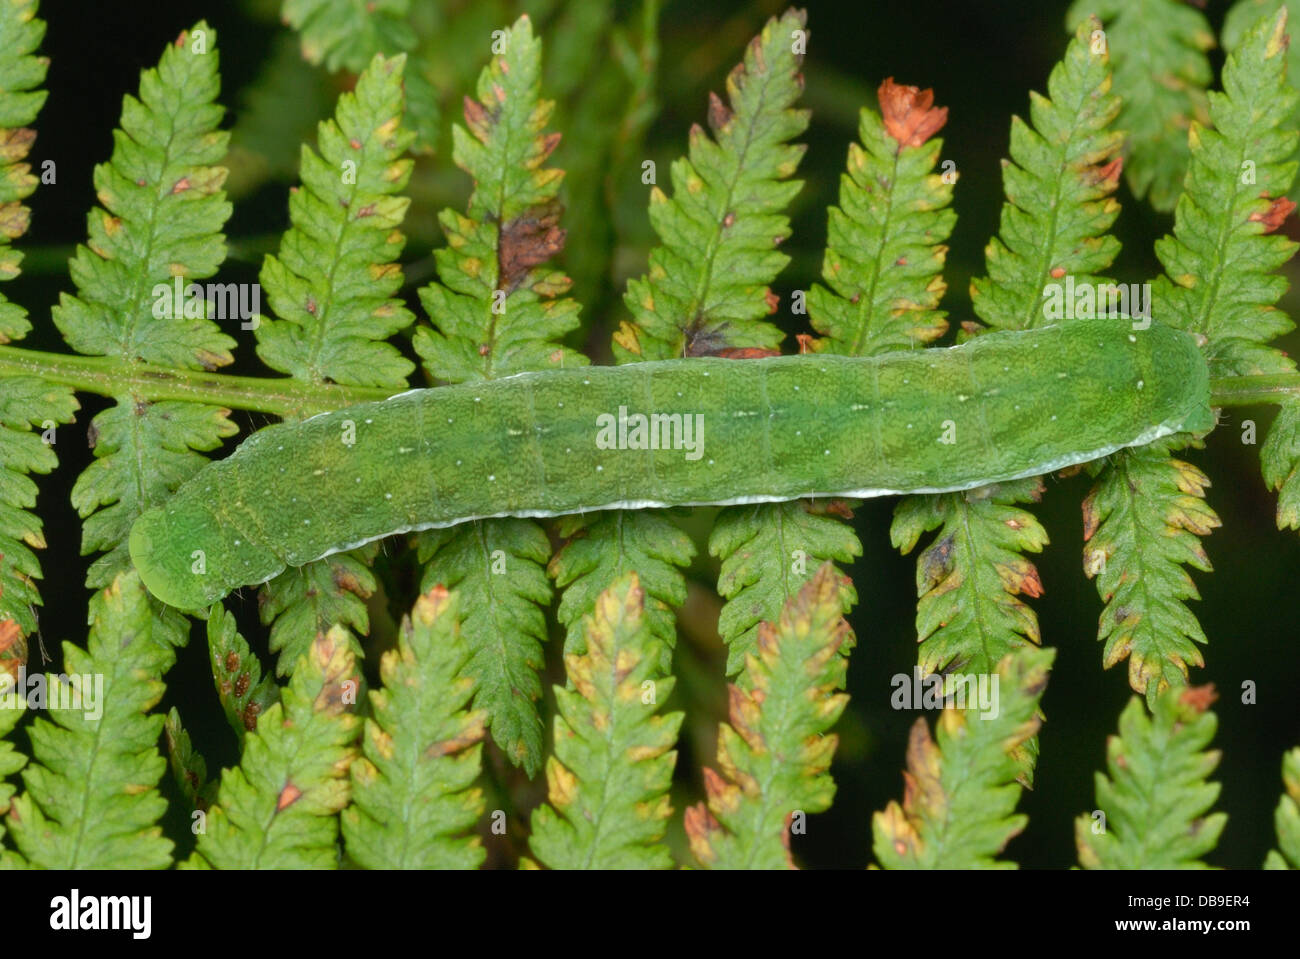 Small Angle Shades moth caterpillar (Euplexia lucipara) on a bracken frond - Stock Image